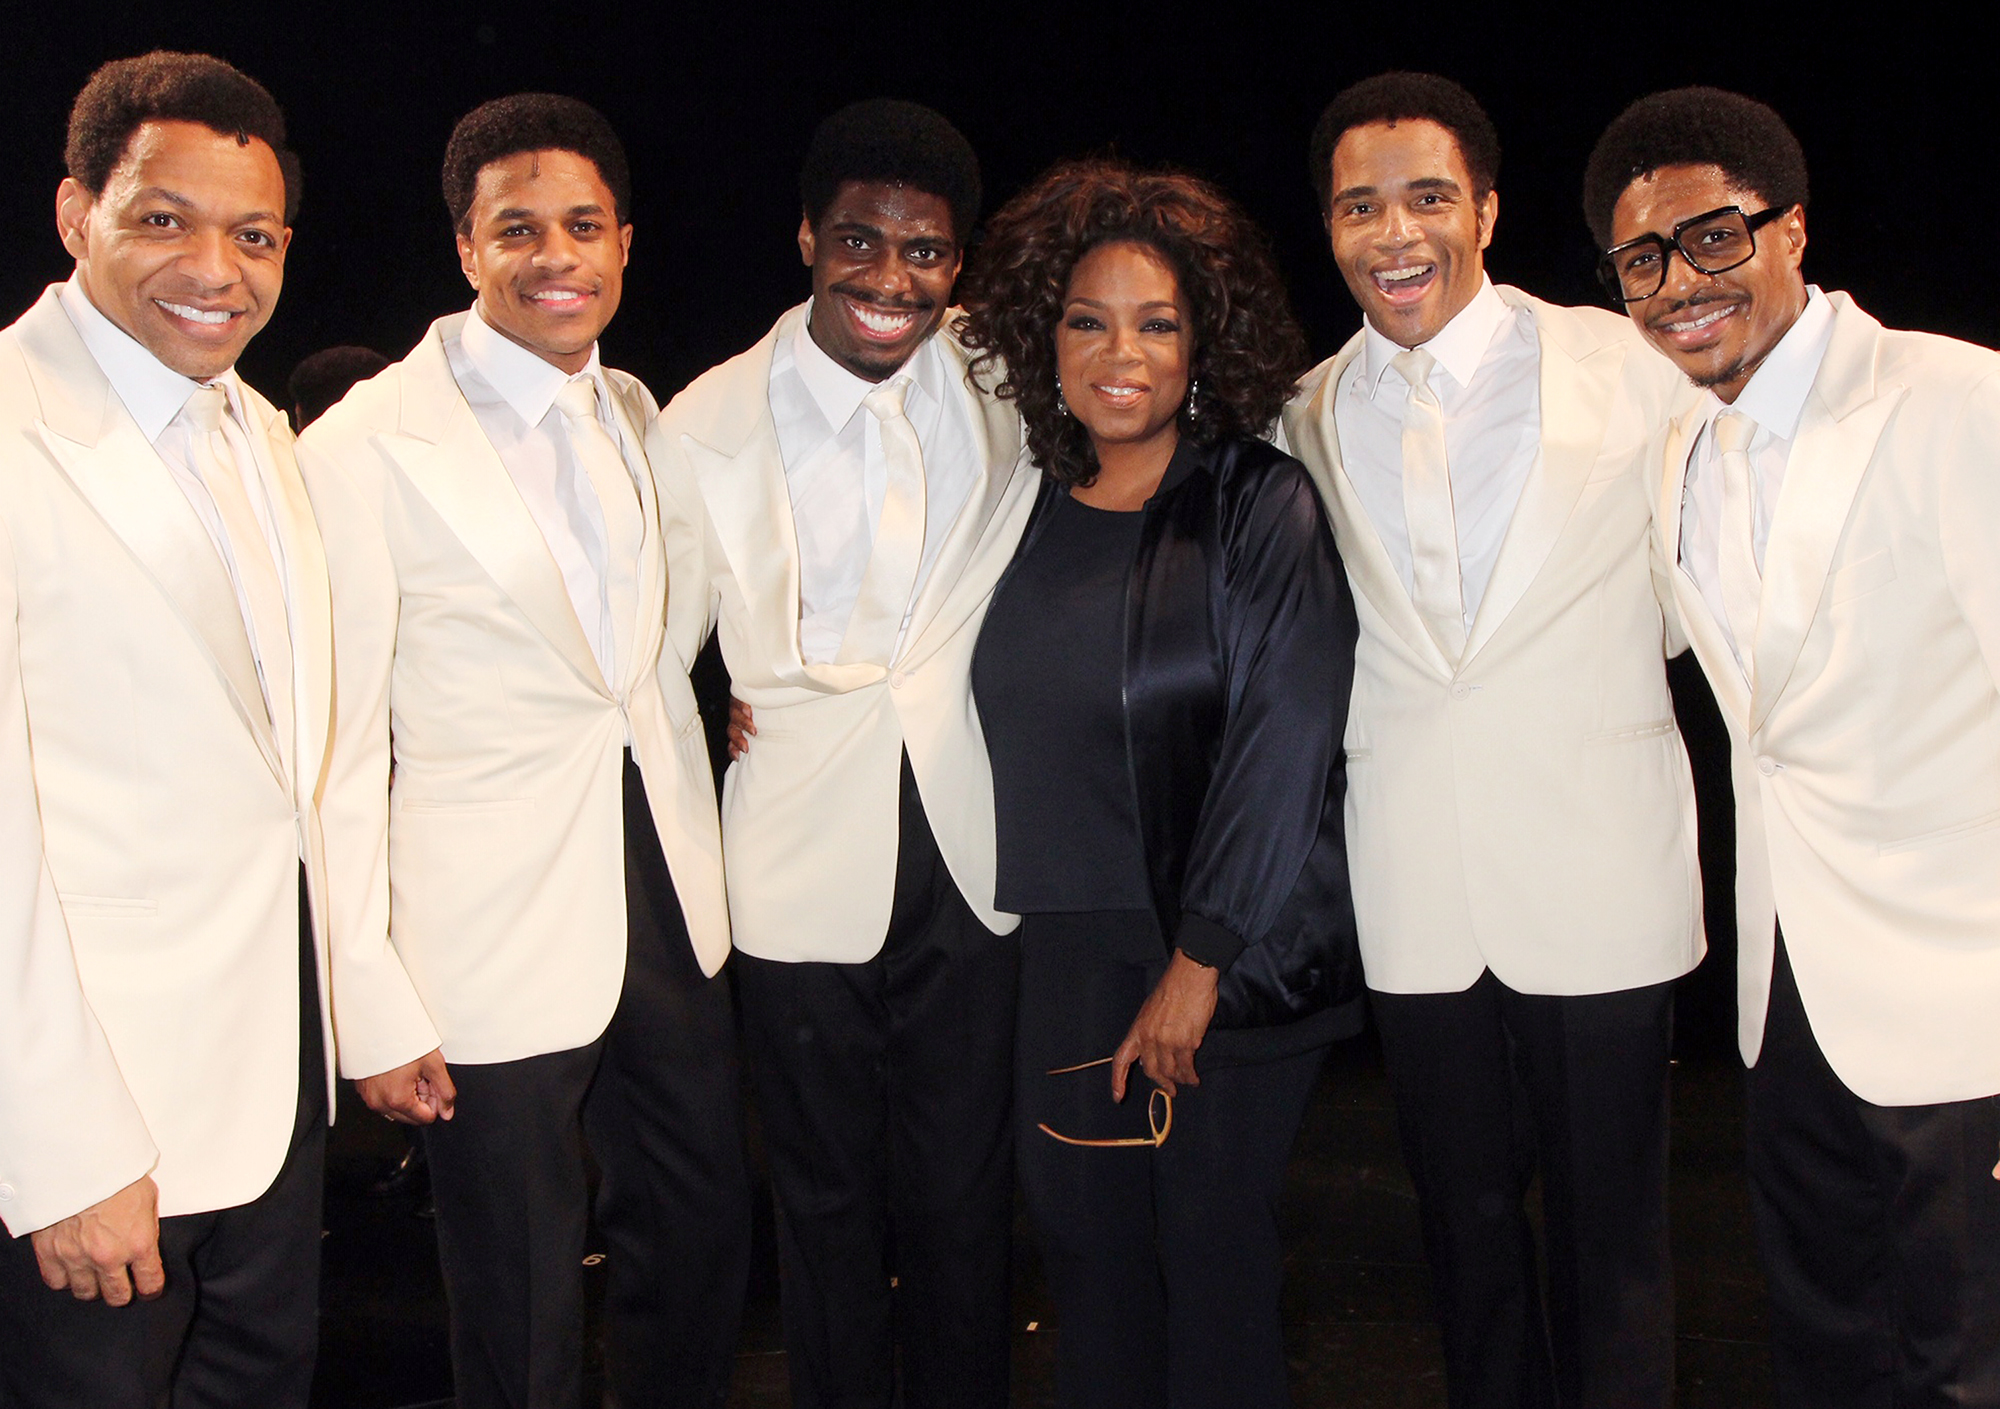 """NEW YORK, NY MAY16: (EXCLUSIVE COVERAGE) (L-R) Derrick Baskin, Jeremy Pope, Jawan M Jackson, Oprah Winfrey, James Harkness and Ephraim Sykes pose backstage at the hit musical """"Ain't Too Proud -The Life and Times of The Temptations"""" on Broadway at The Imperial Theatre on May 17, 2019 in New York City.(Photo by Bruce Glikas/WireImage)"""